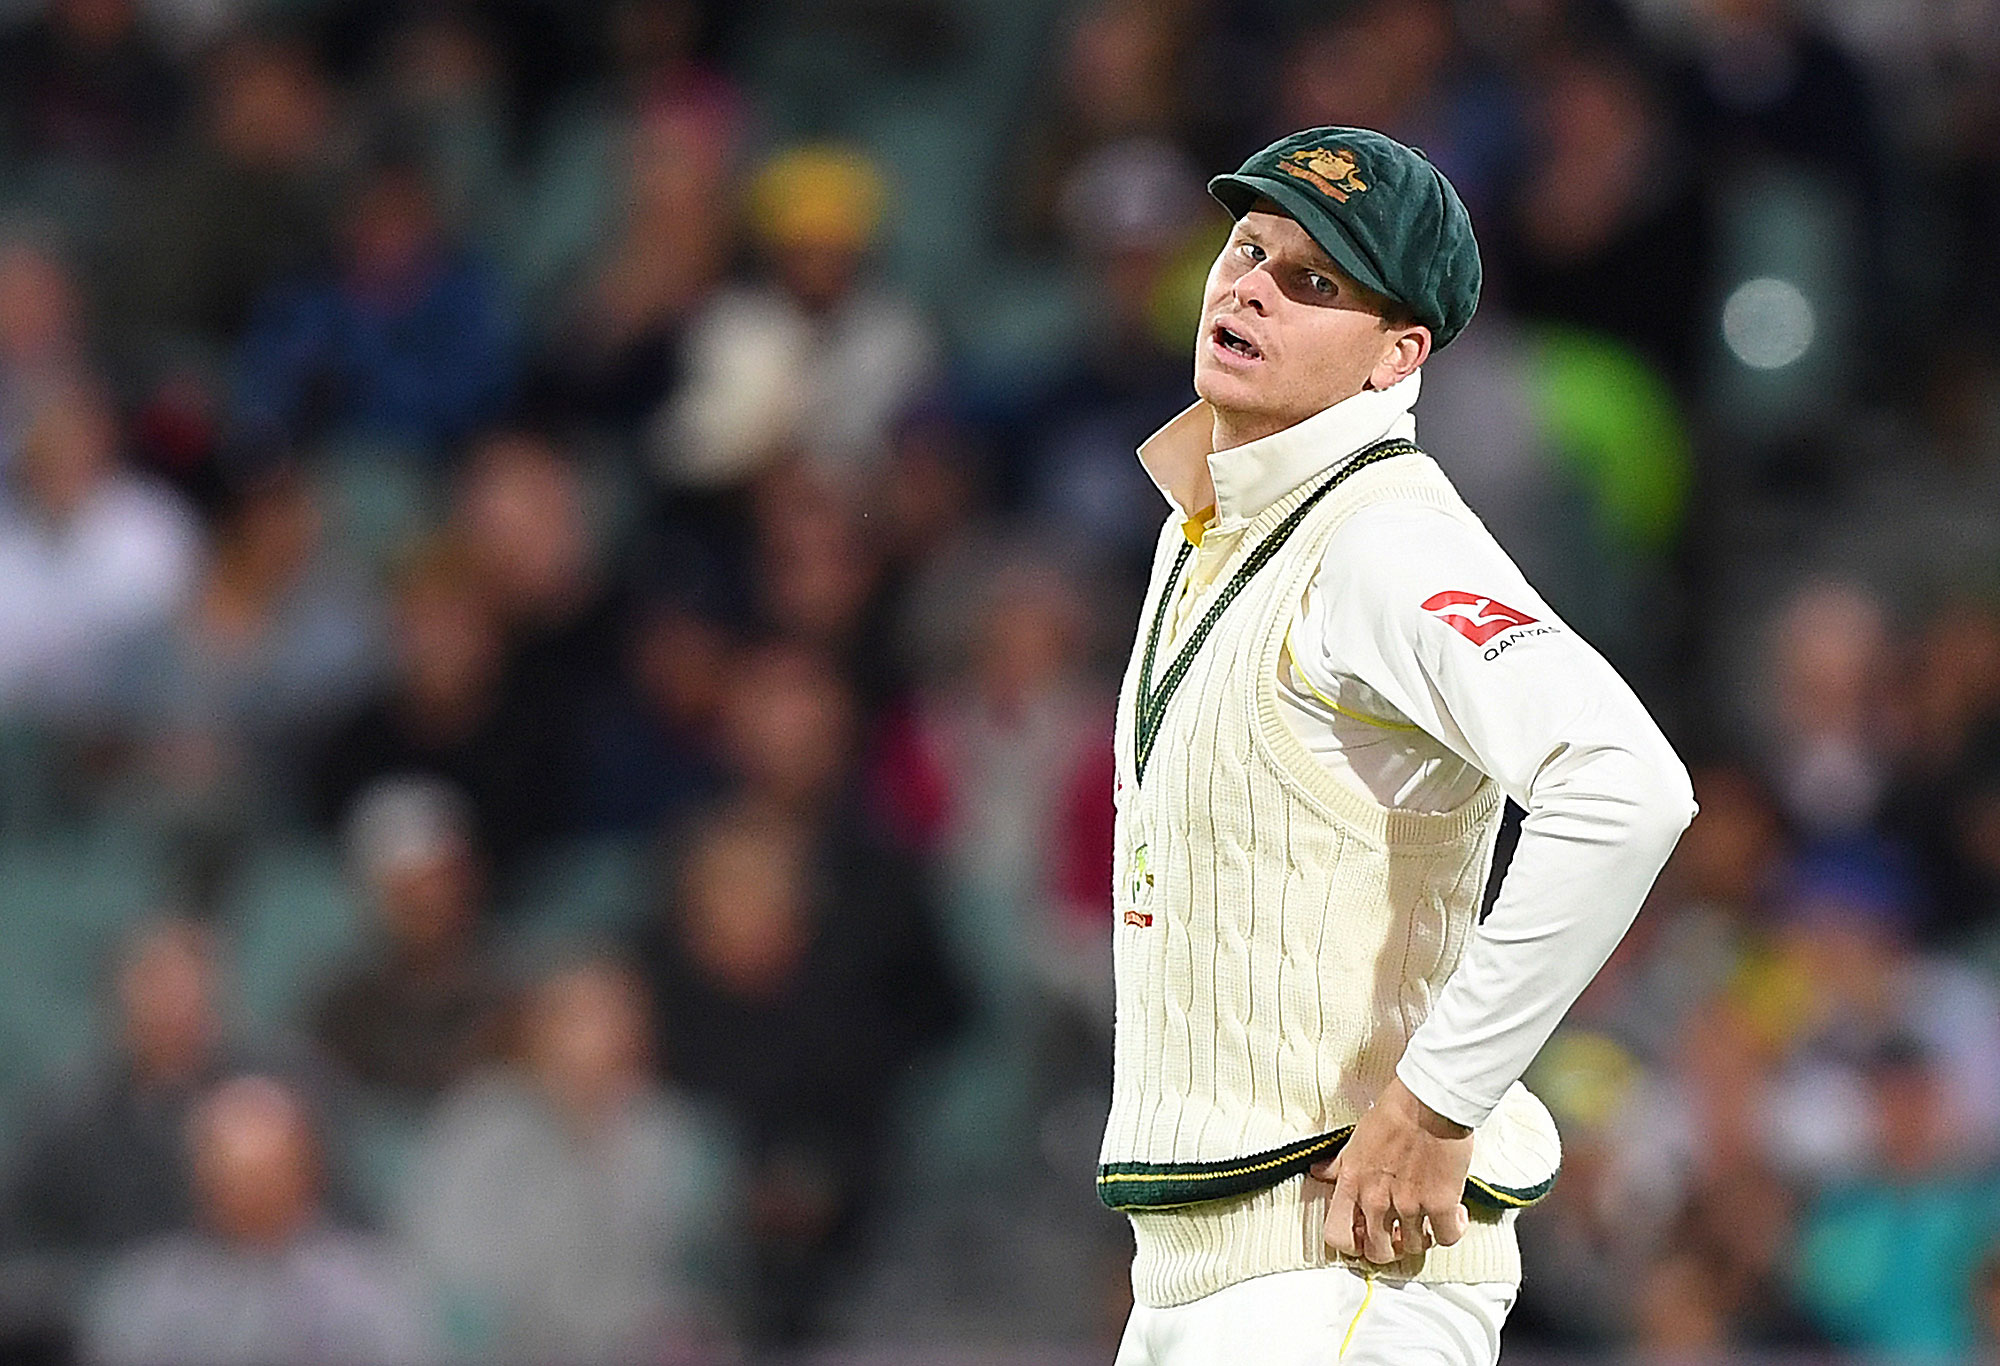 Australian captain Steve Smith reacts following a dropped catch